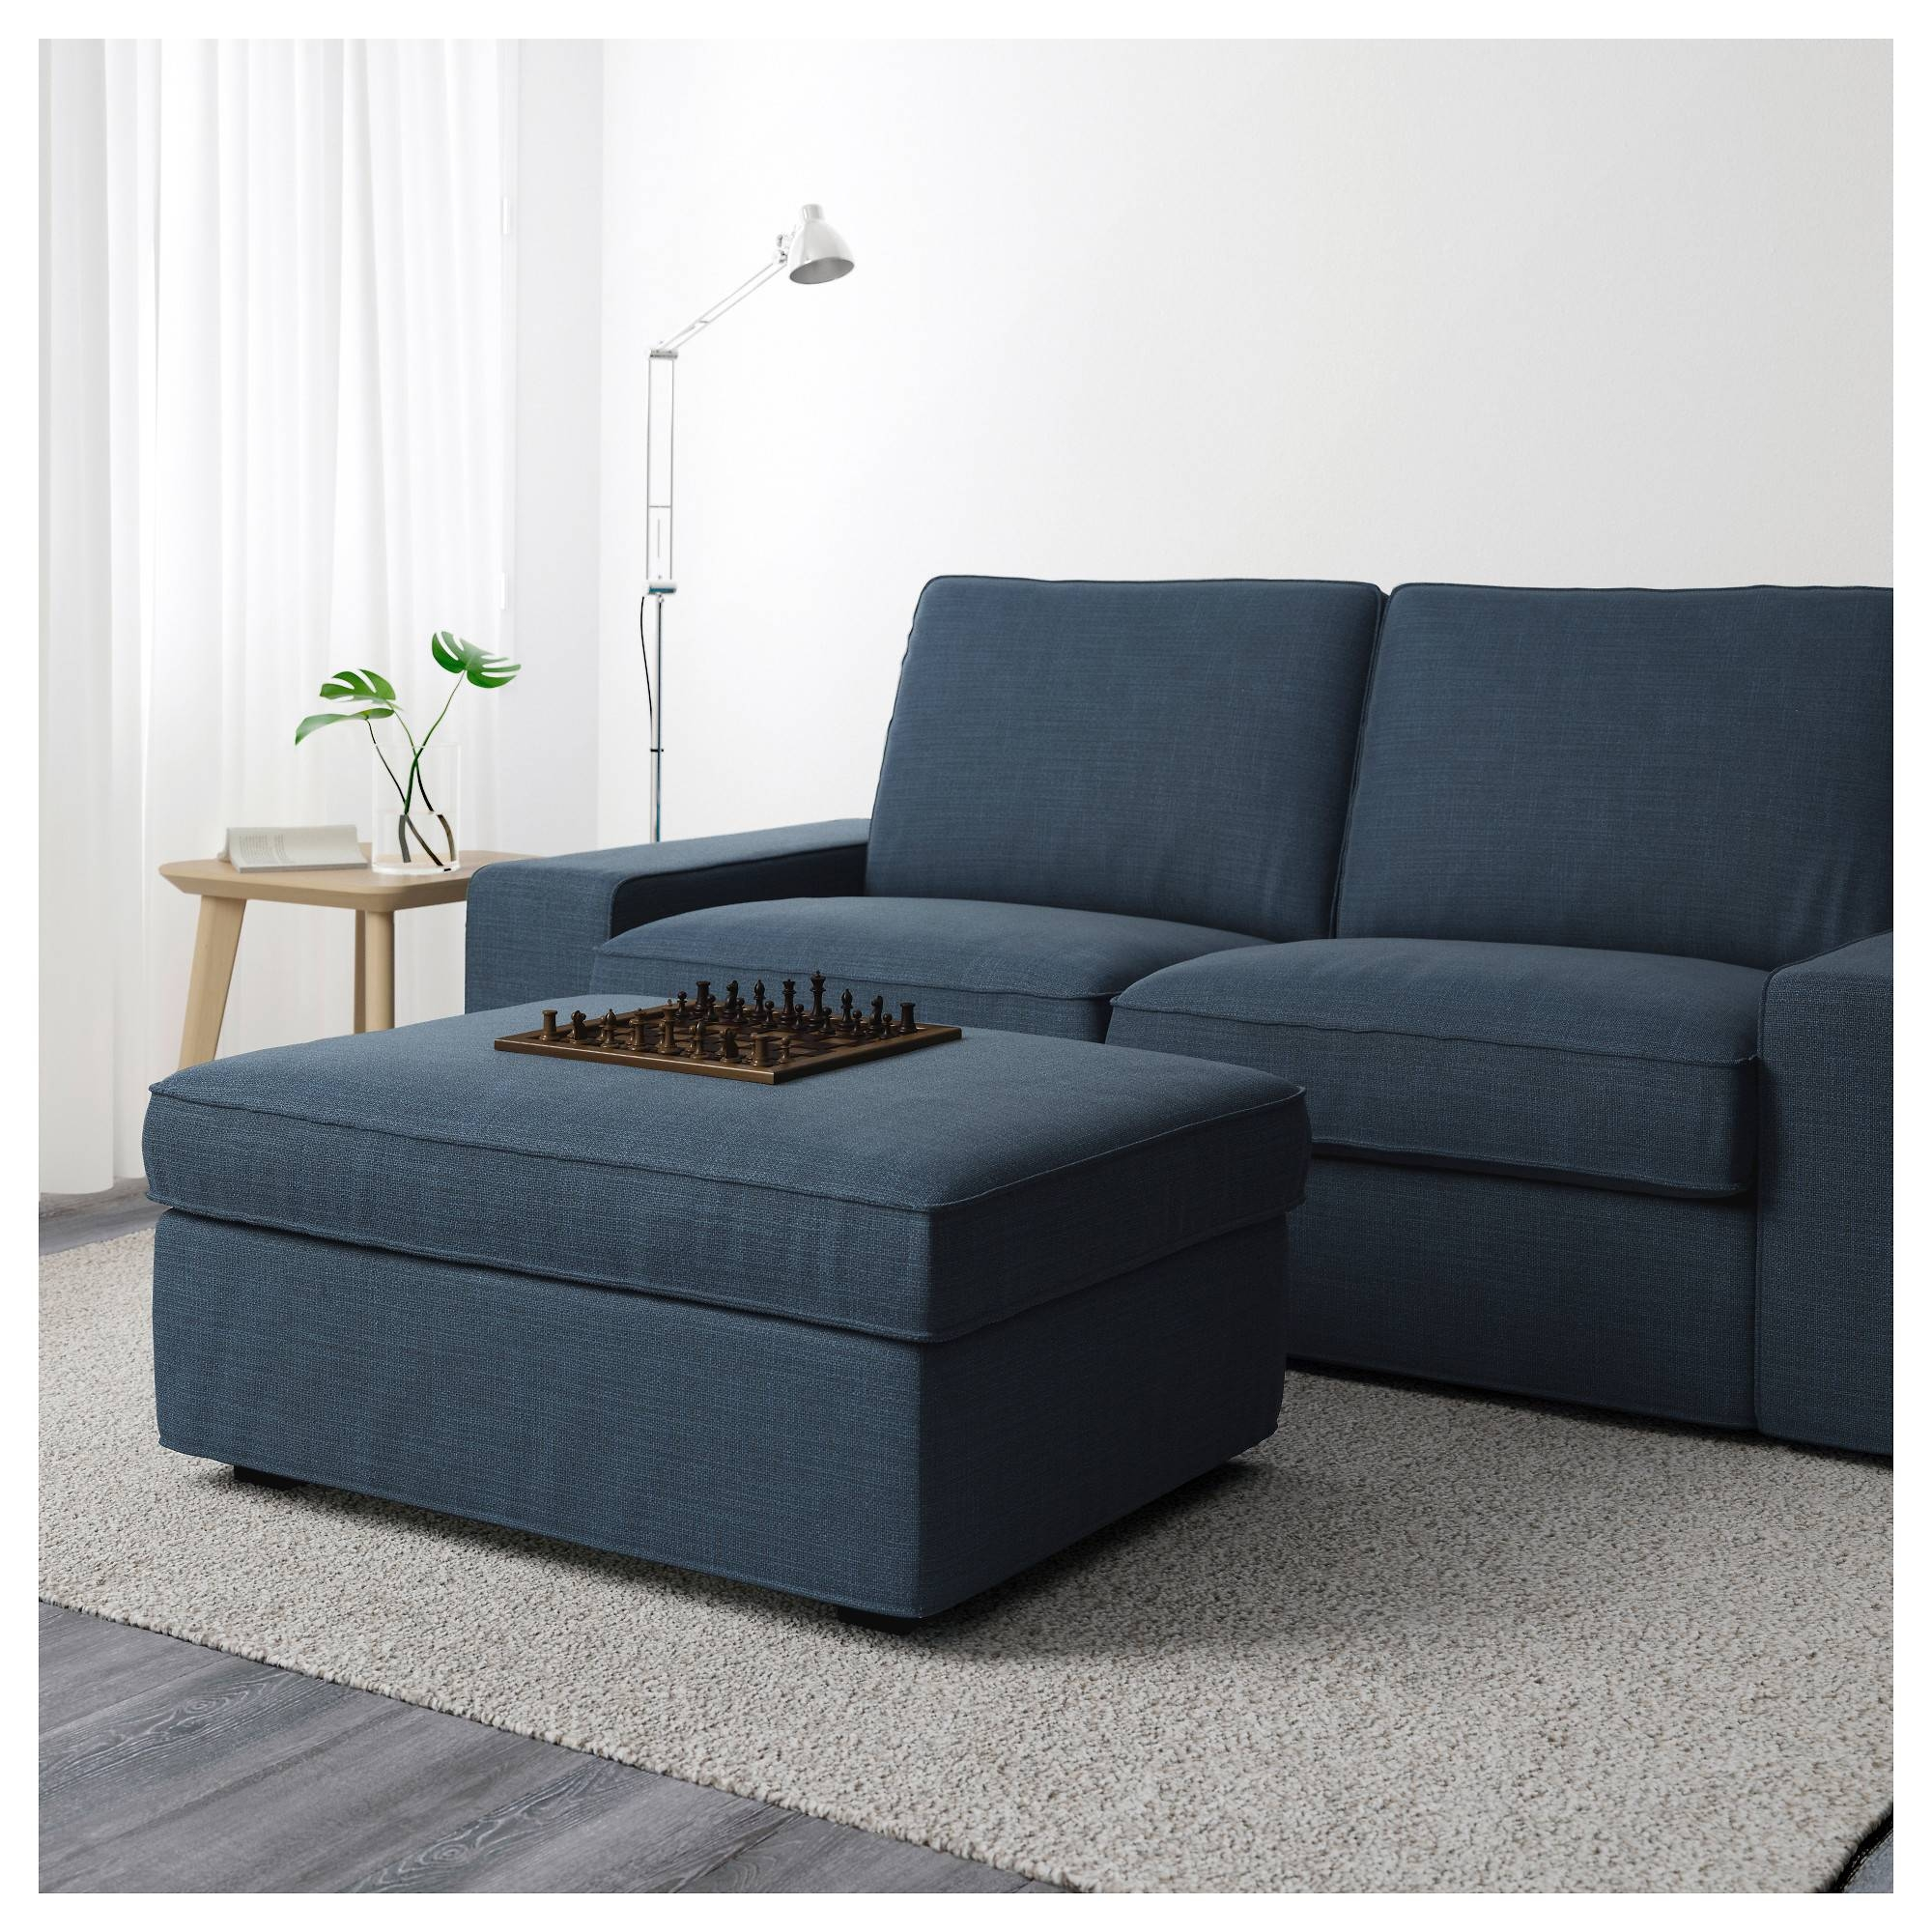 Kivik Ottoman With Storage - Orrsta Light Gray - Ikea intended for Ikea Sofa Storage (Image 20 of 25)